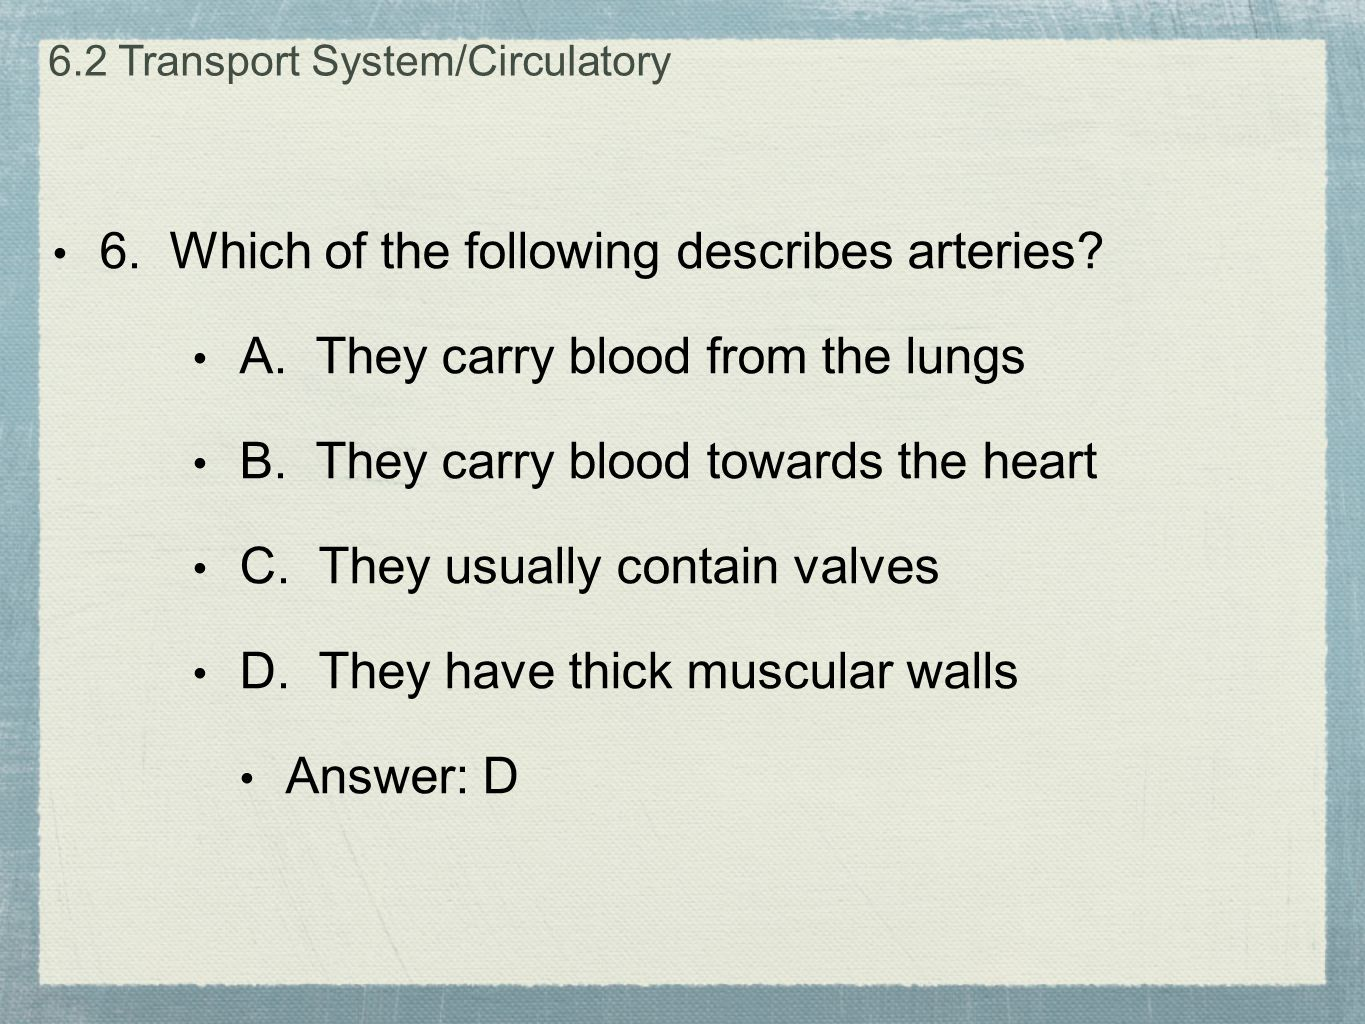 6. Which of the following describes arteries